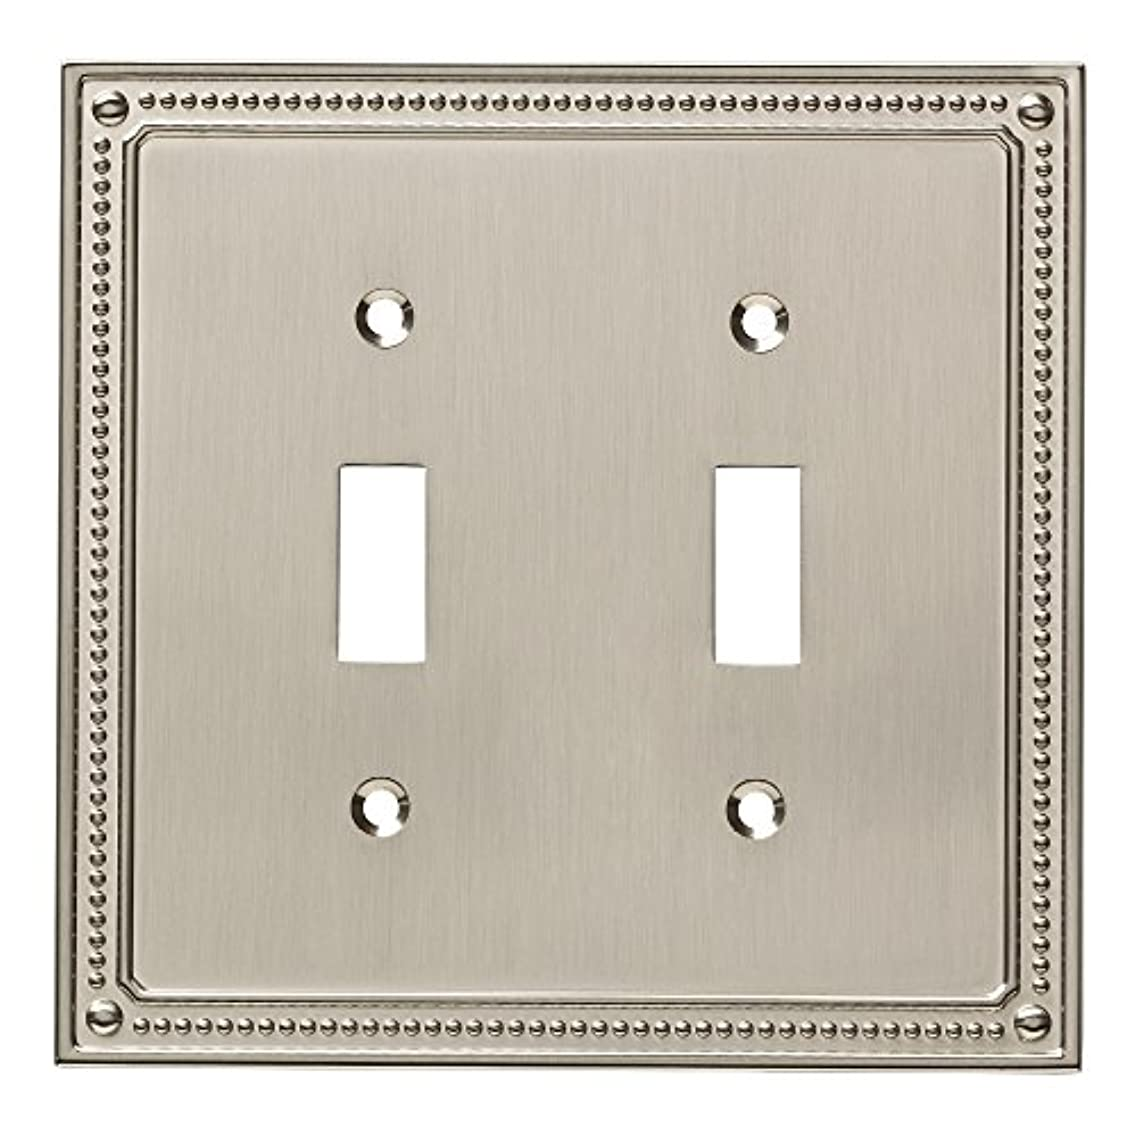 Franklin Brass W35061-SN-C Classic Beaded Double Switch Wall Plate/Switch Plate/Cover, Satin Nickel